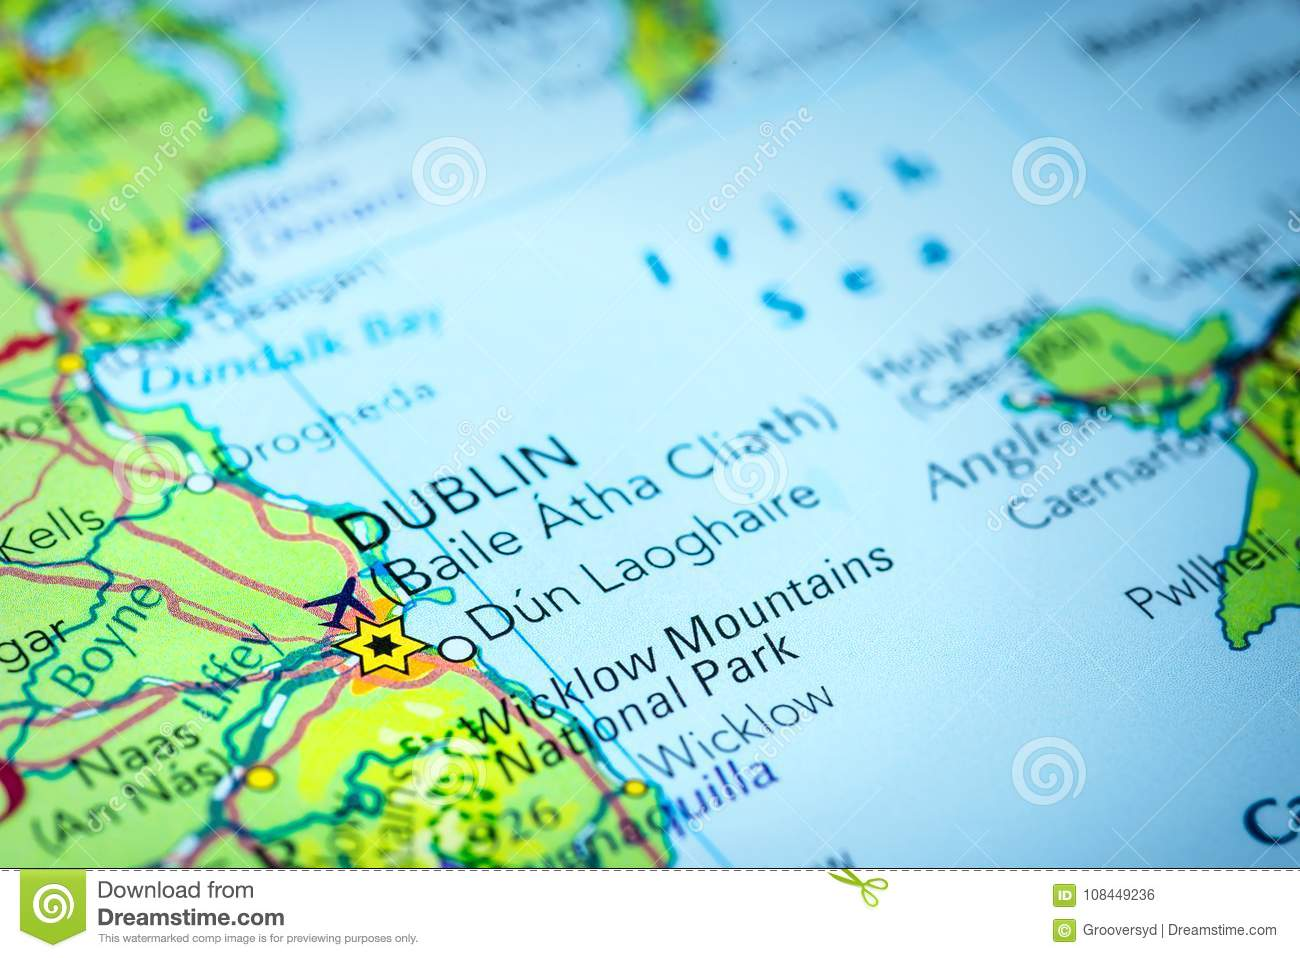 Dublin In Ireland On A Map Stock Photo Image Of Capital 108449236